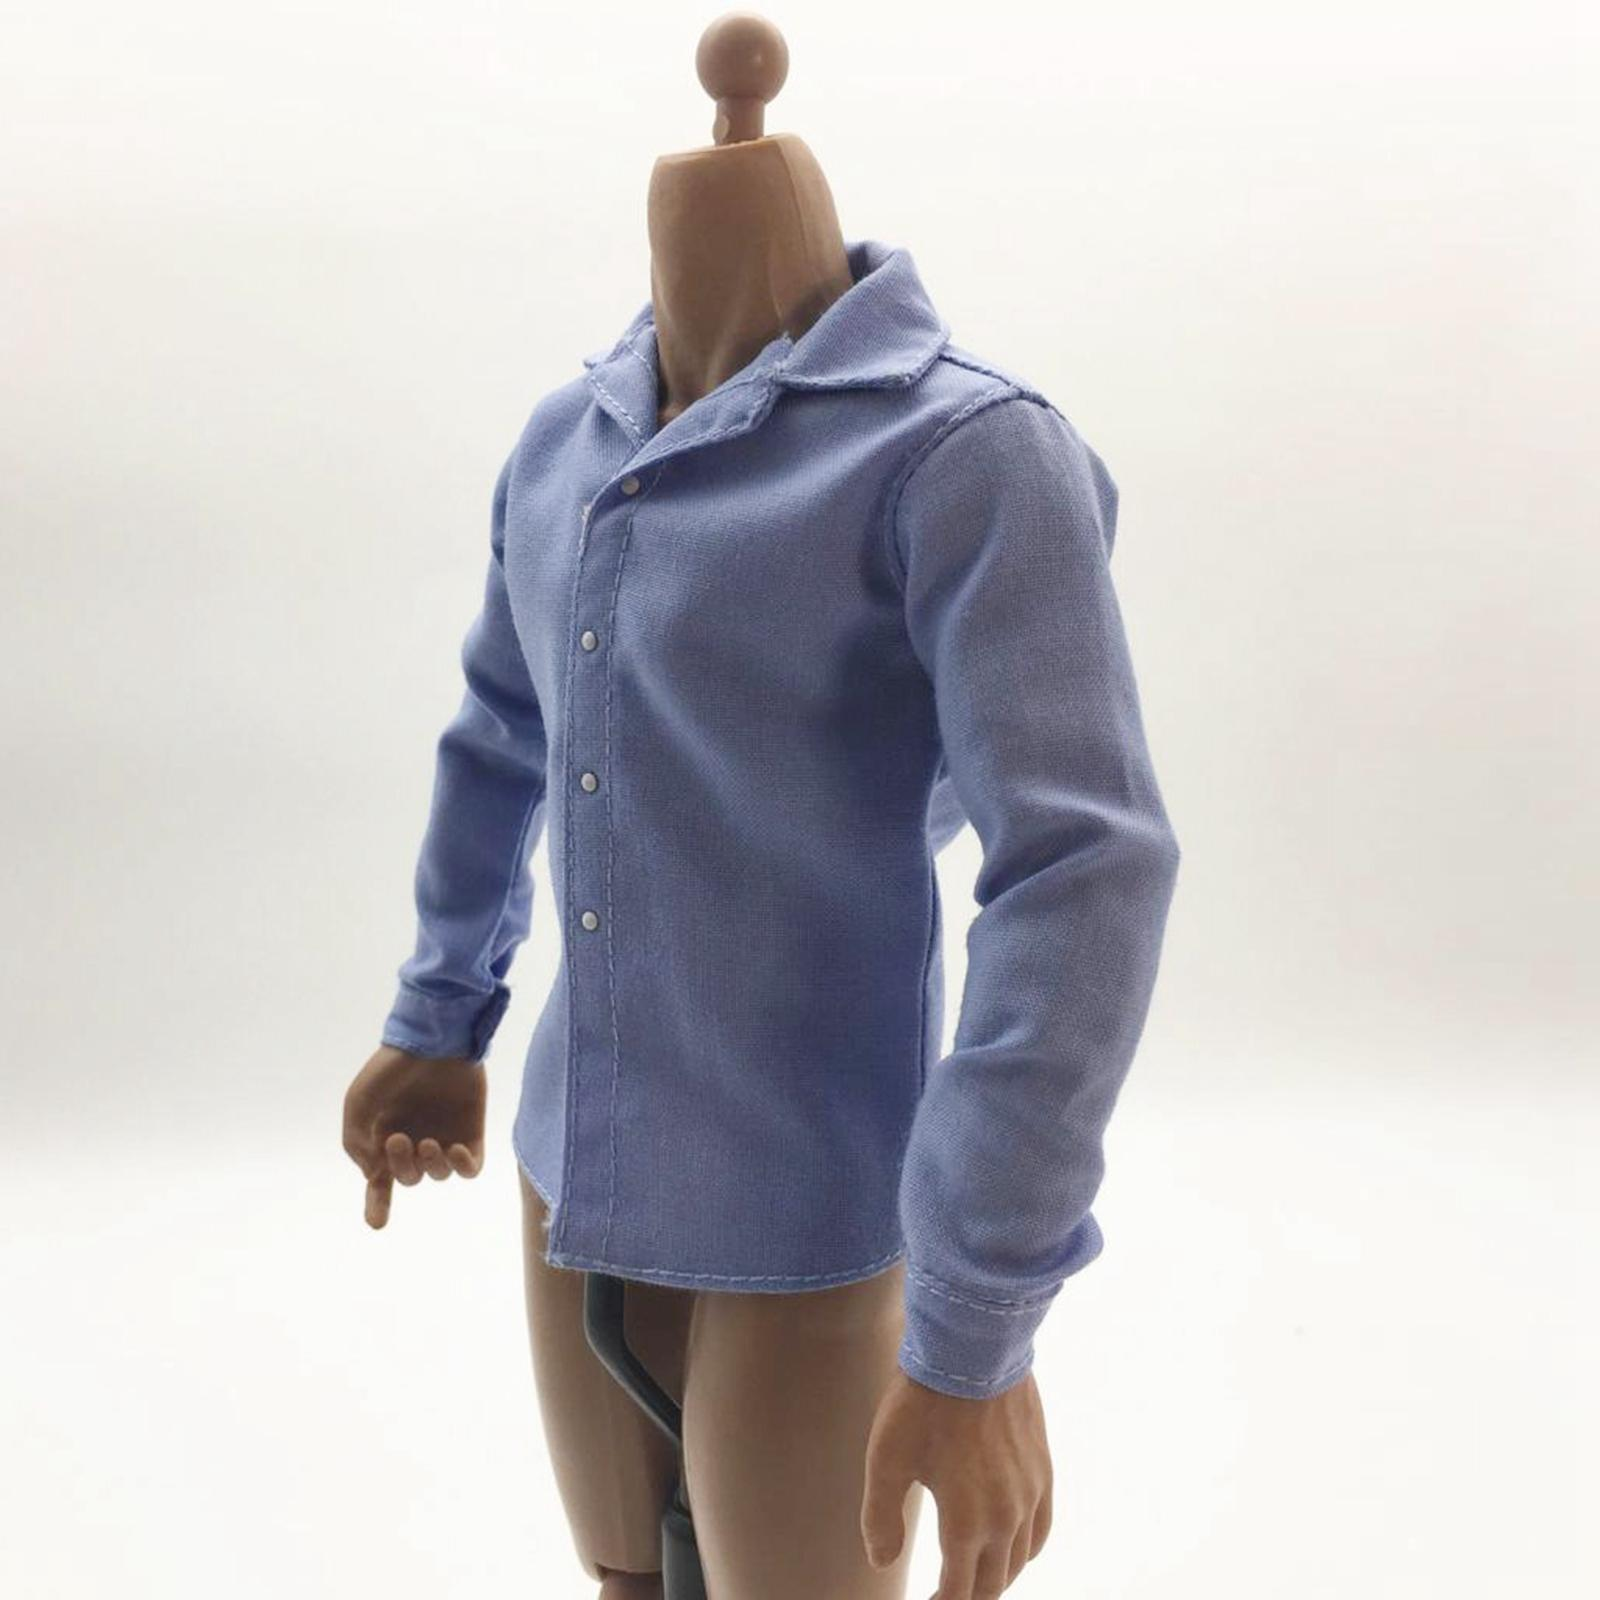 1//6 Men/'s Shirt Male Clothes Clothing for 12/'/' Figure Body Toy Accessories